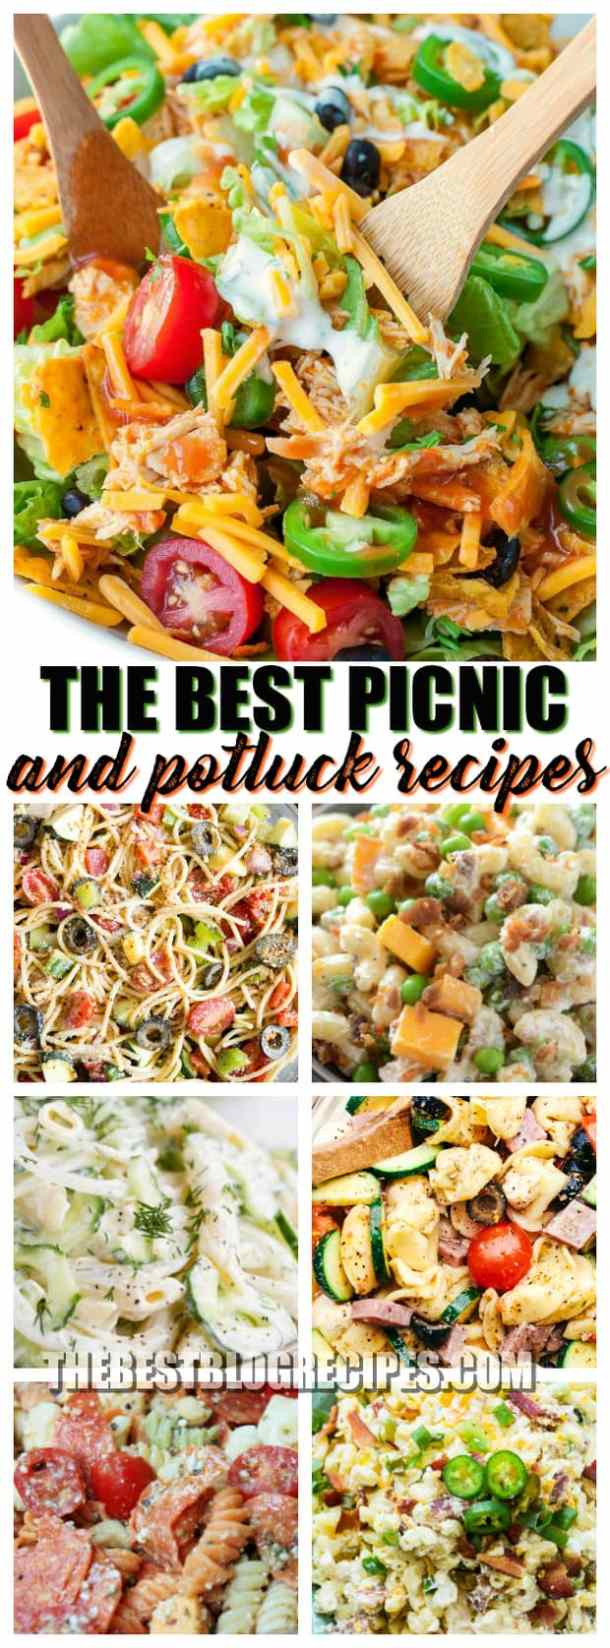 The Best Picnic and Potluck Recipes